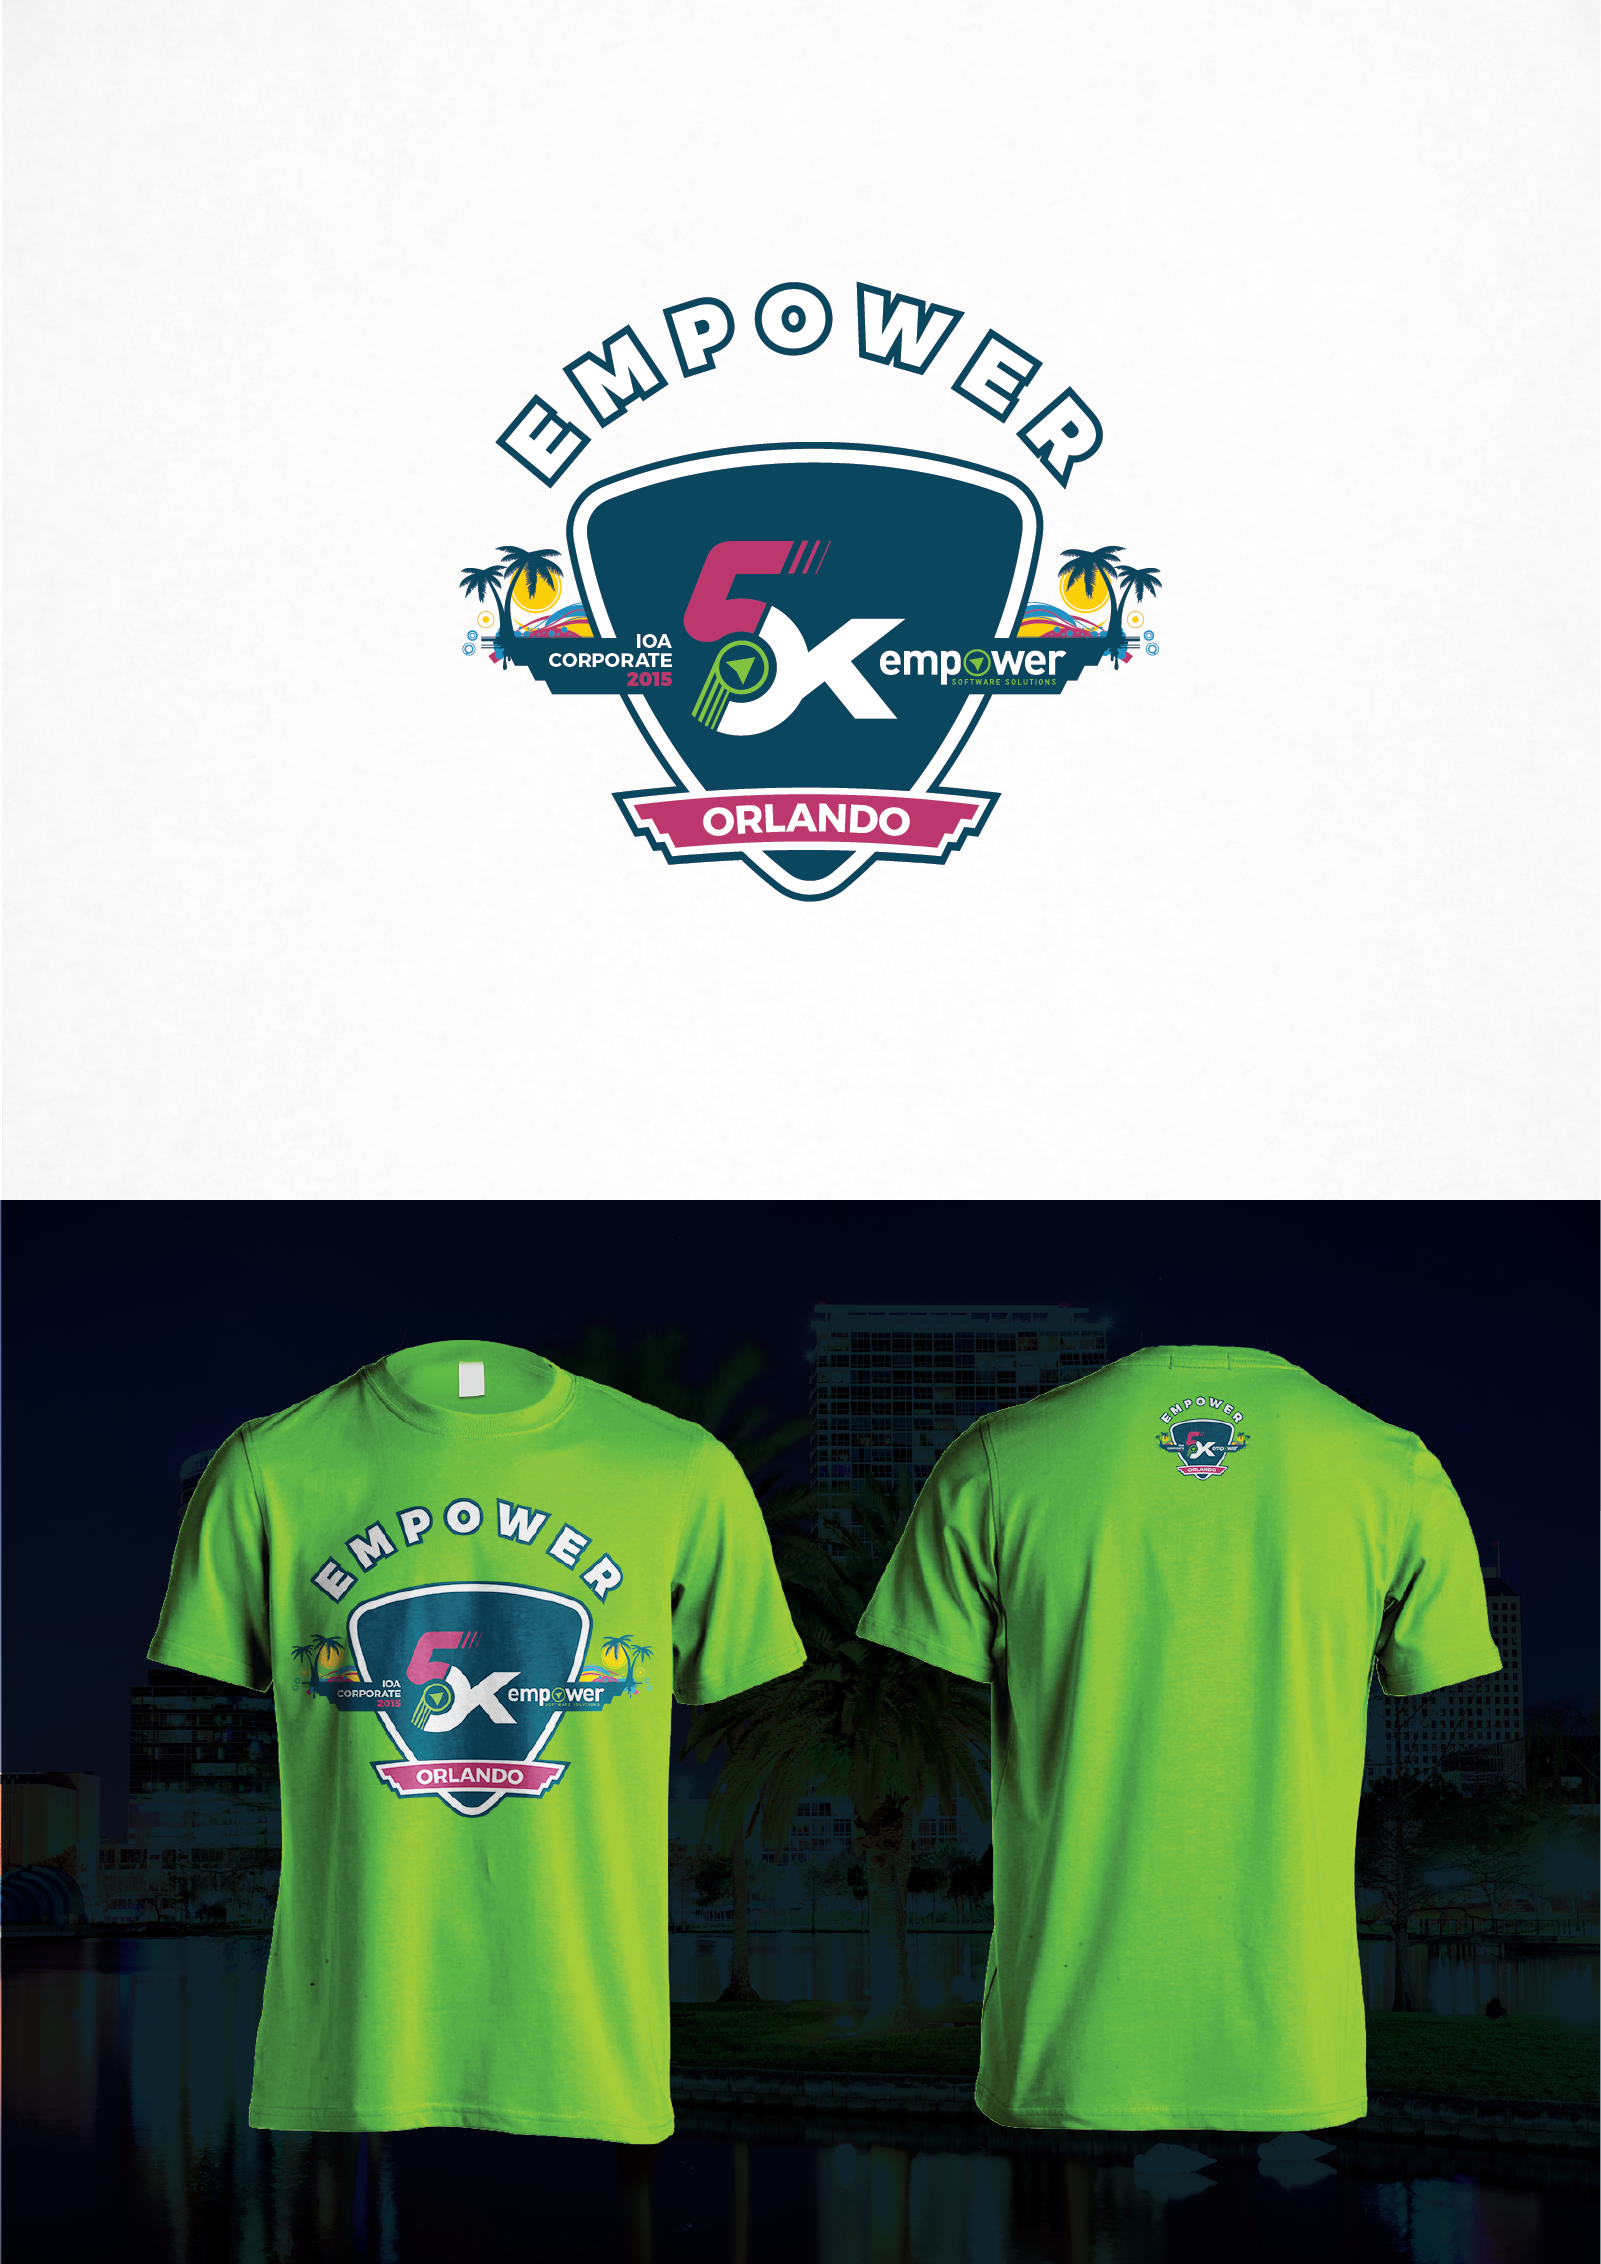 Create a contest-winning corporate 5K T-shirt for our employee team!